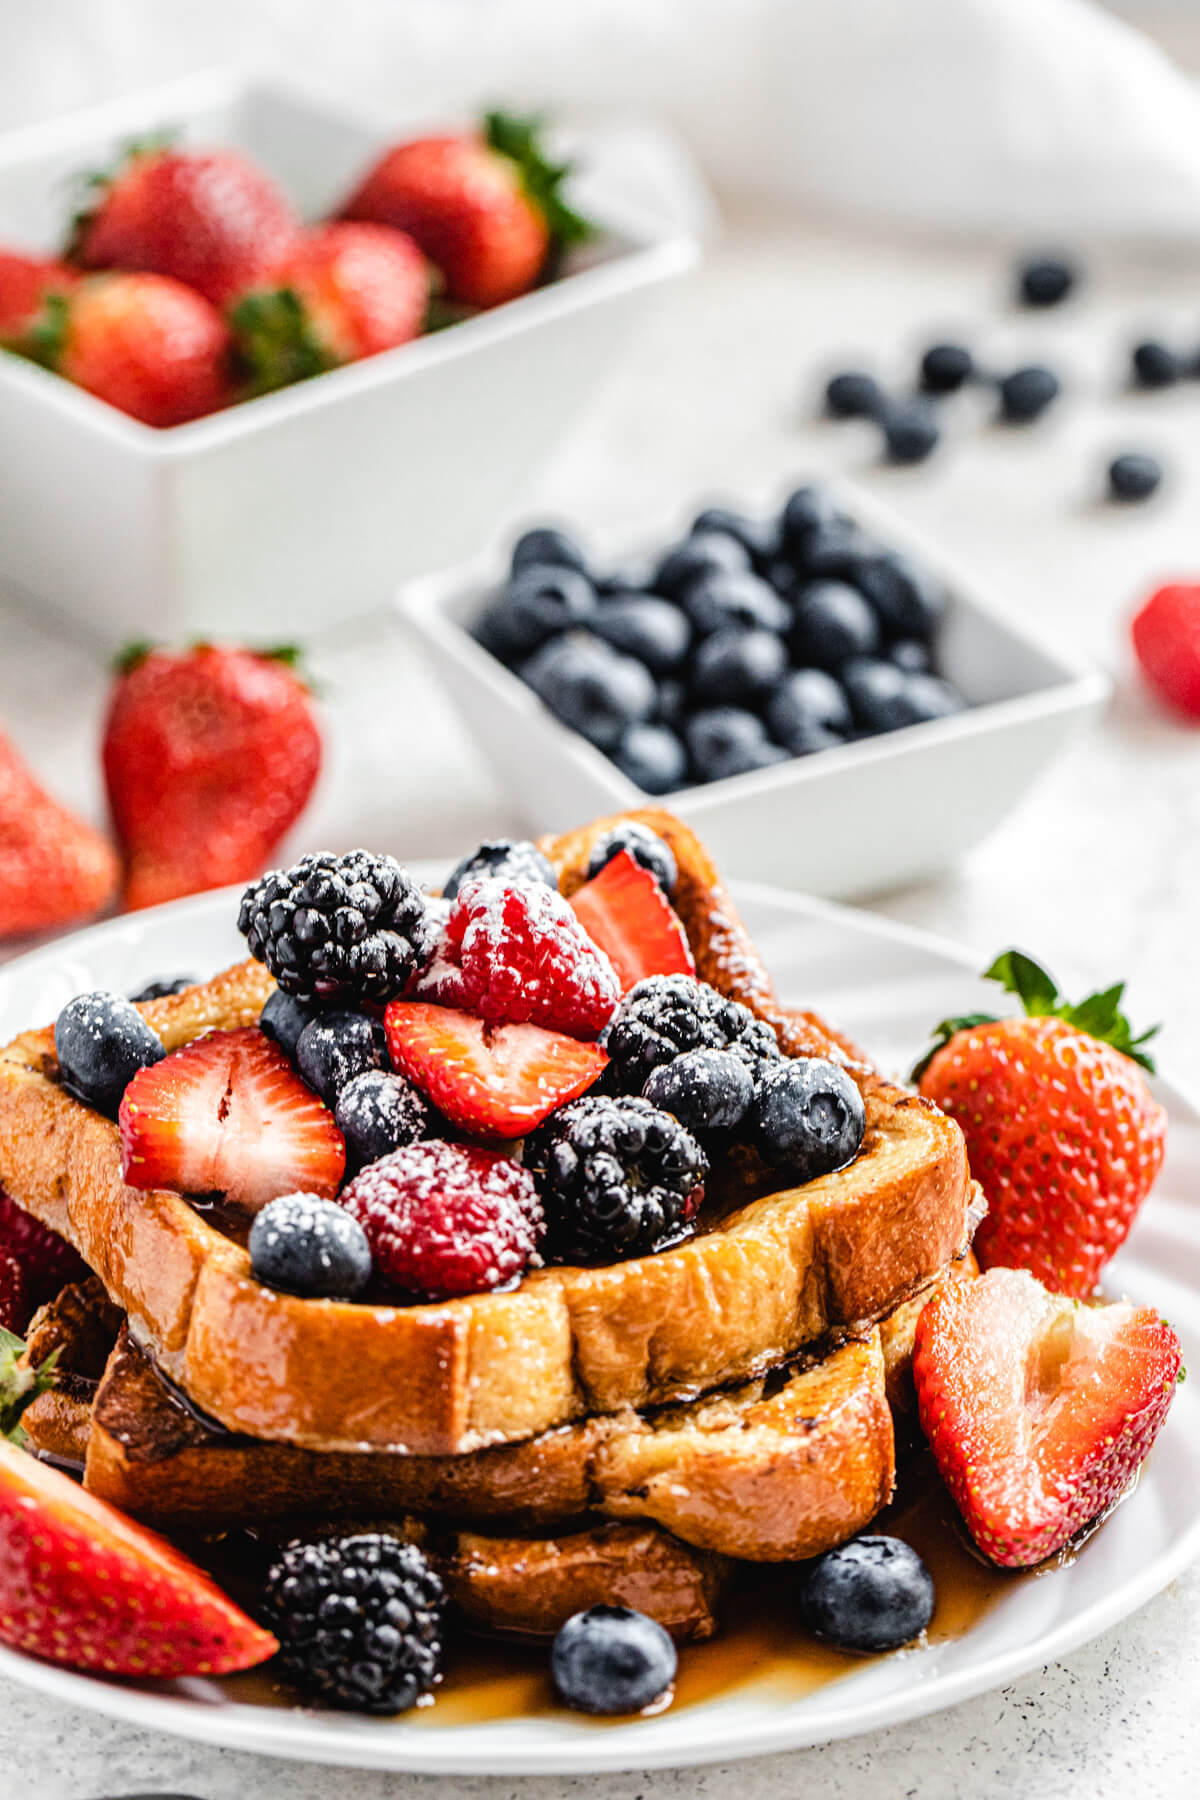 French toast topped with berries and icing sugar